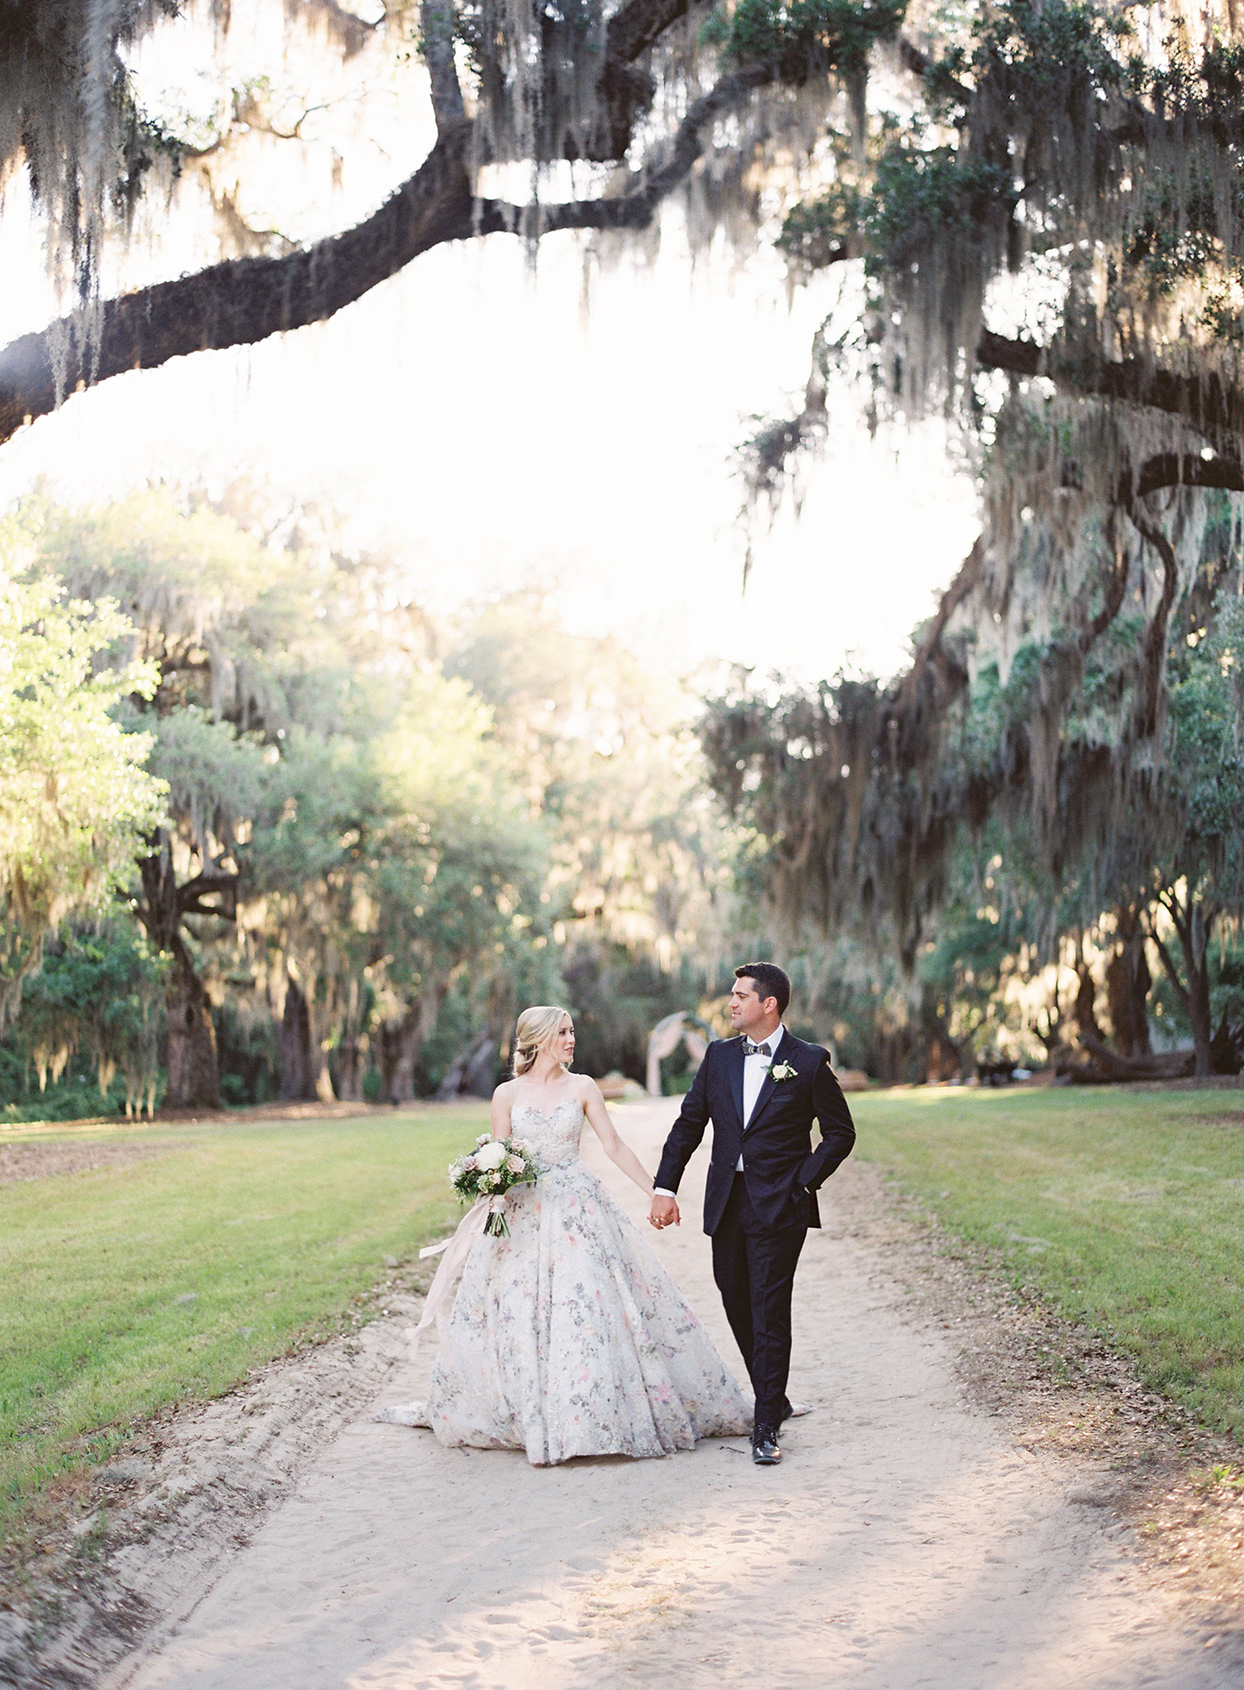 Old Stone Ruins Set the Scene for This Secret Garden-Themed Wedding in South Carolina